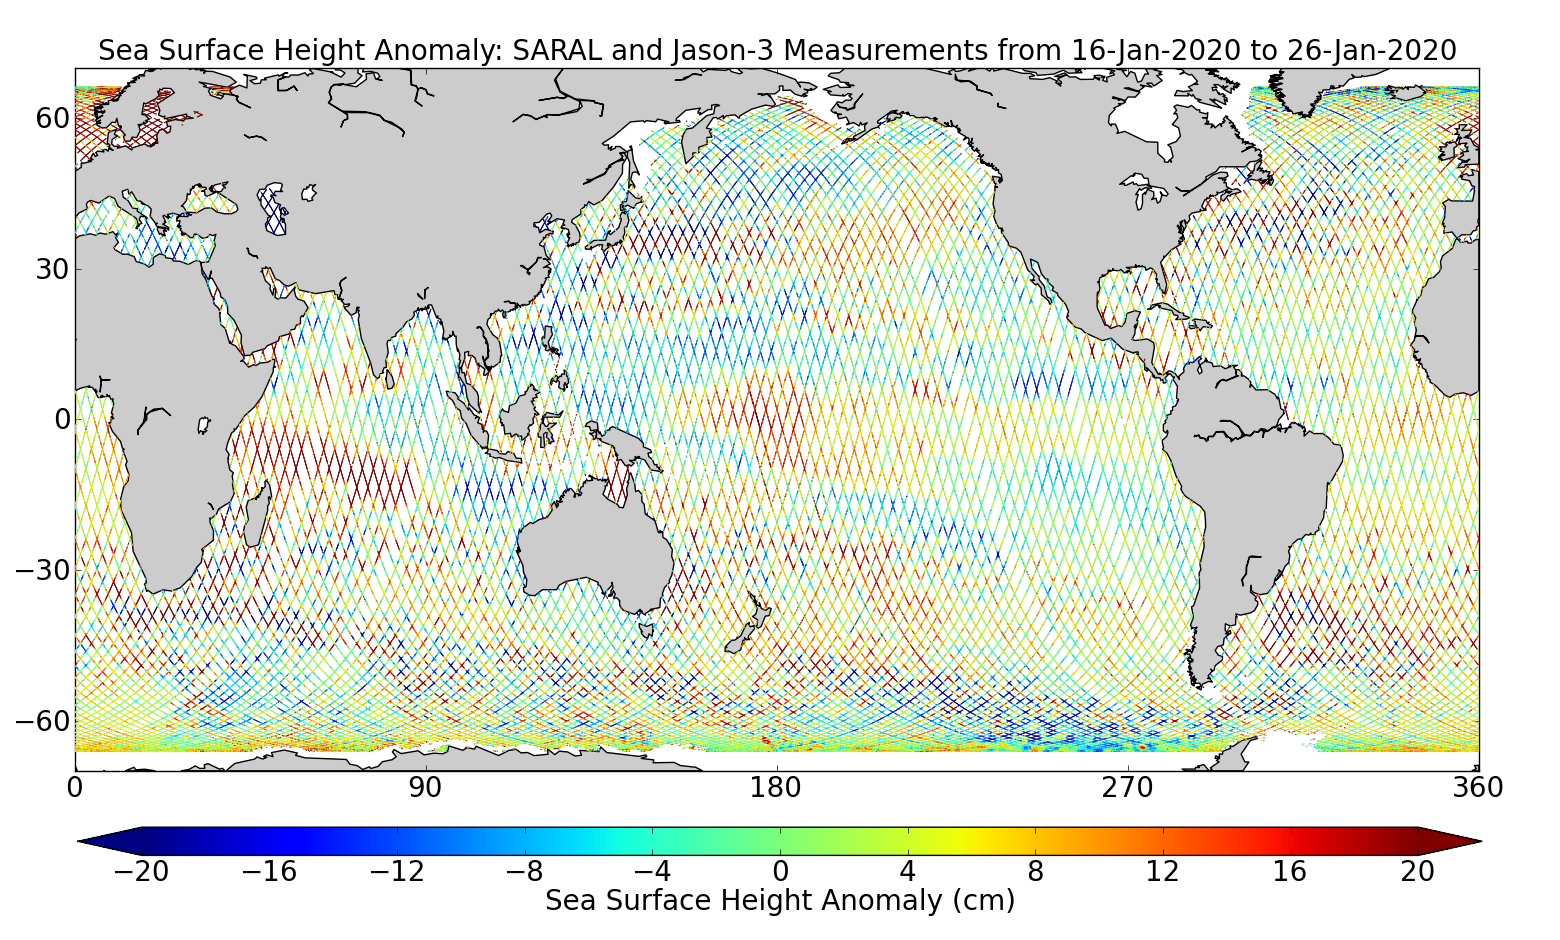 Sea Surface Height Anomaly: SARAL and Jason-3 Measurements from 16-Jan-2020 to 26-Jan-2020